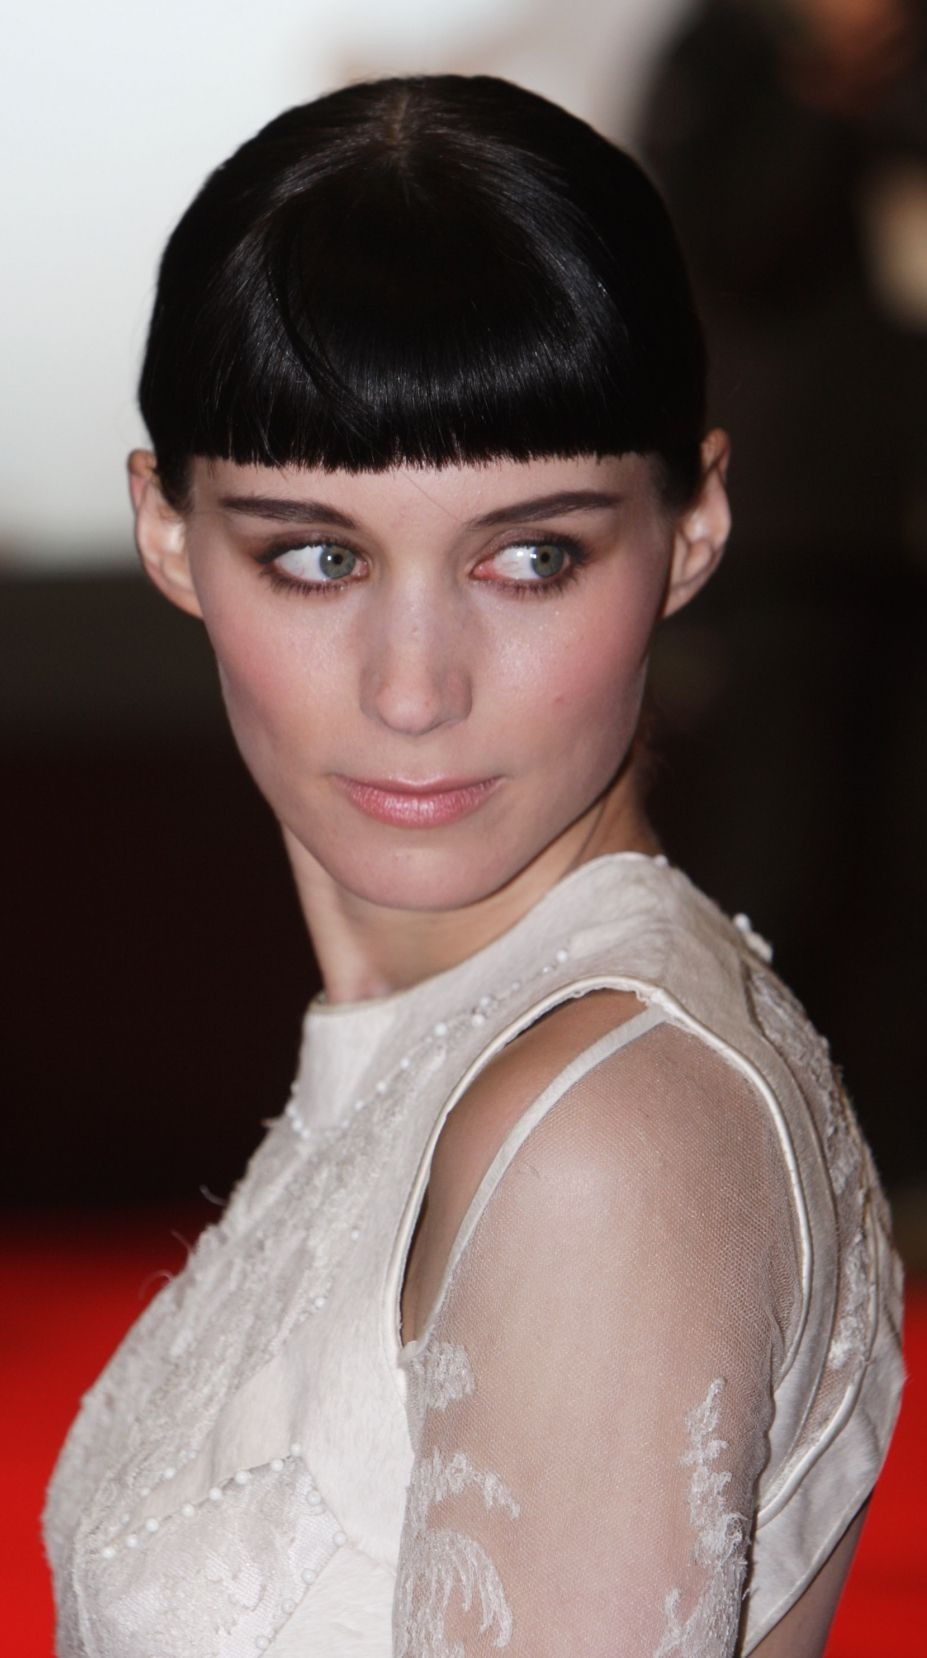 Rooney Mara The girl with the dragon tattoo, Princess